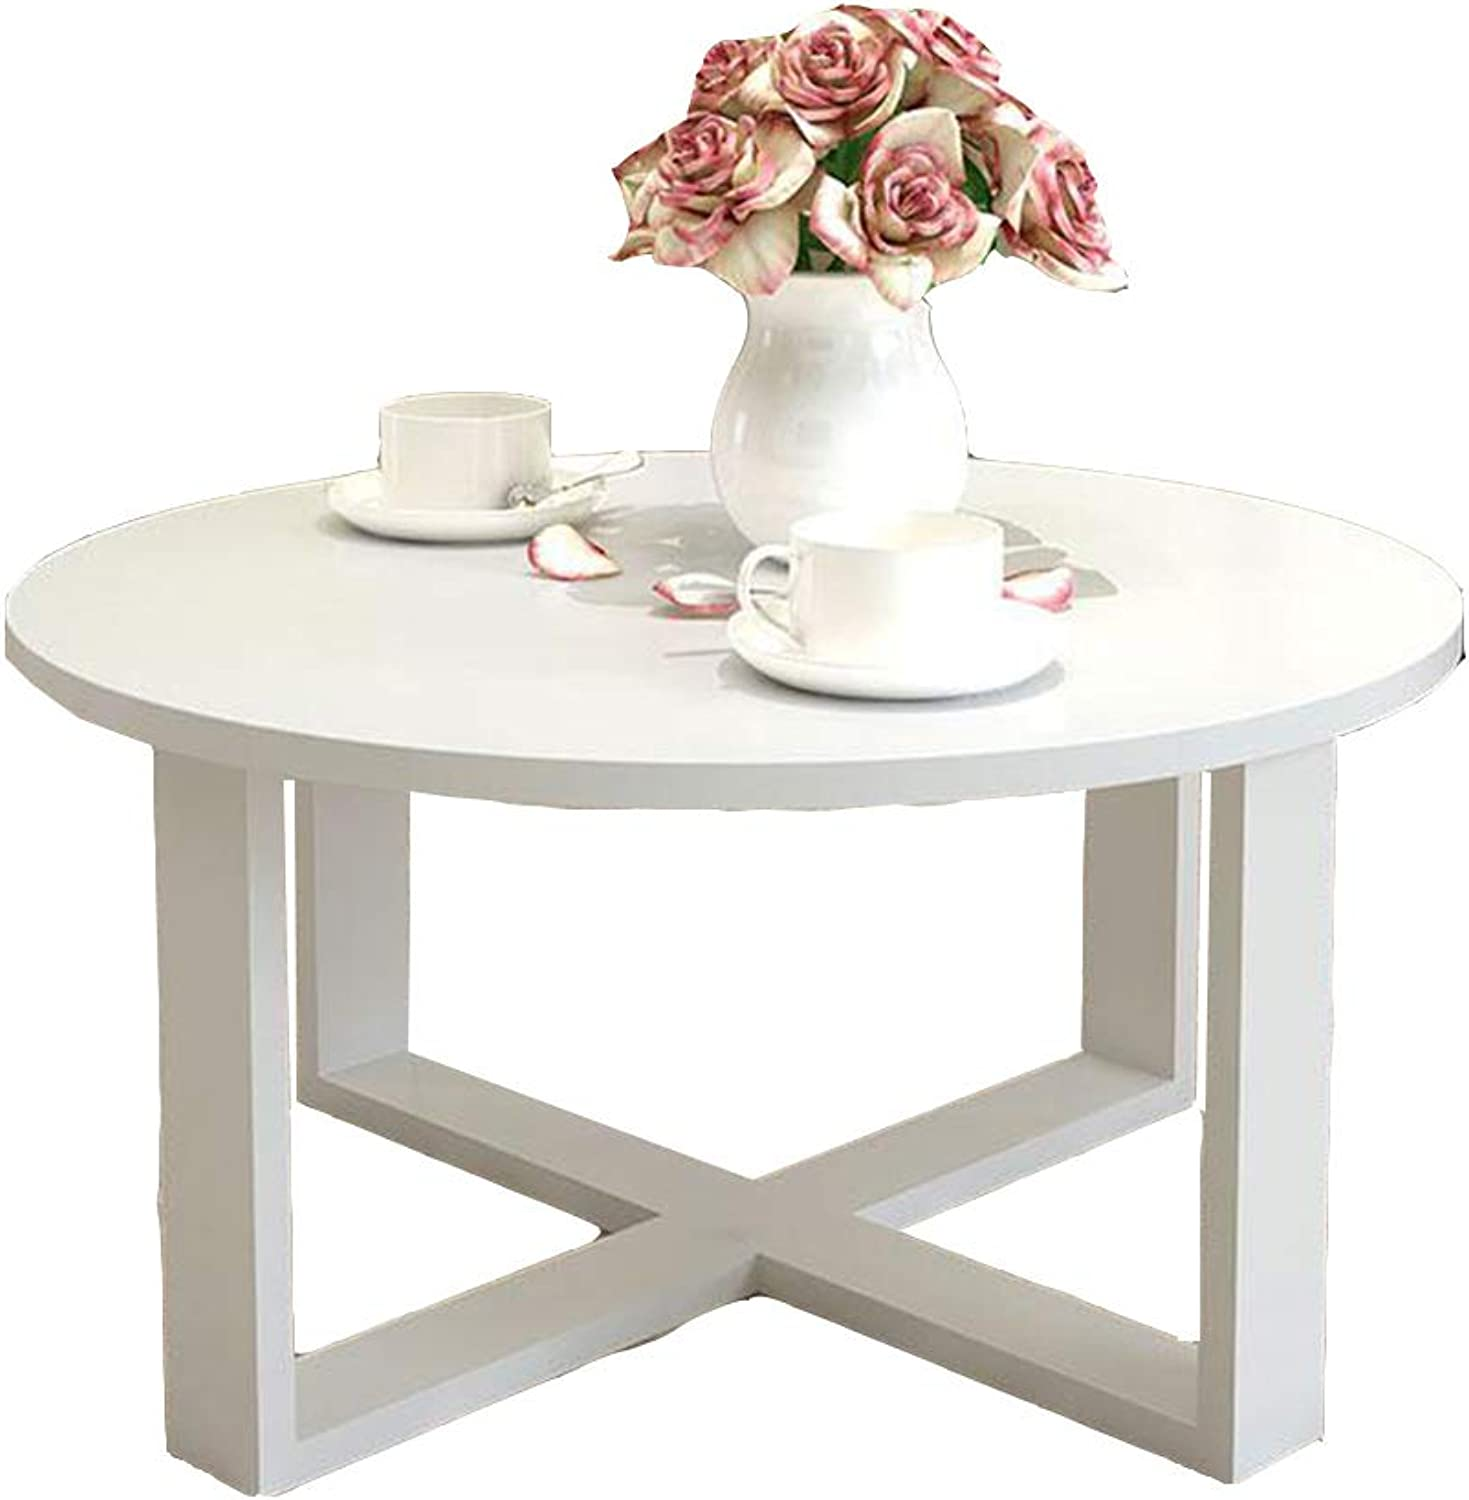 Round Coffee Table End Table Bedside Table 60  40cm (color   White)